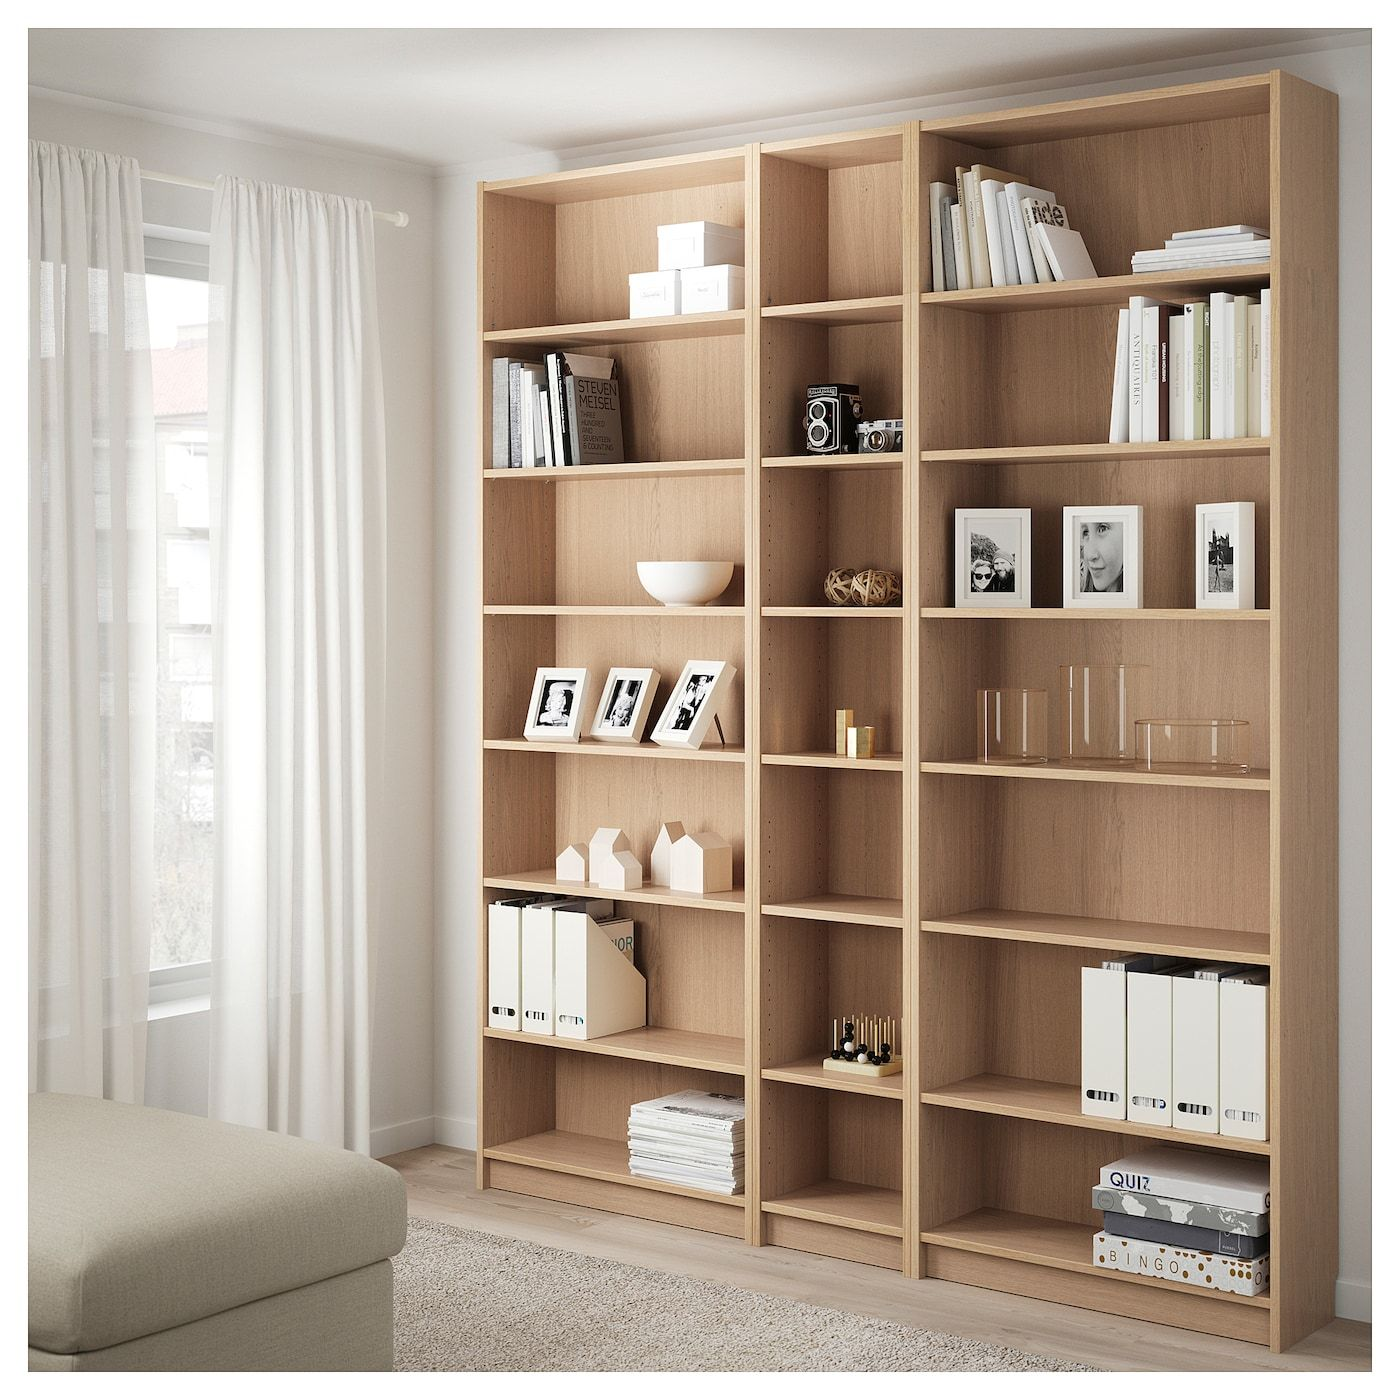 Billy Bibliotheque Avec Surmeubles Plaque Chene Blanchi 200x28x237 Cm Ikea Ikea Chene Blanchi Bibliotheque Ikea Billy